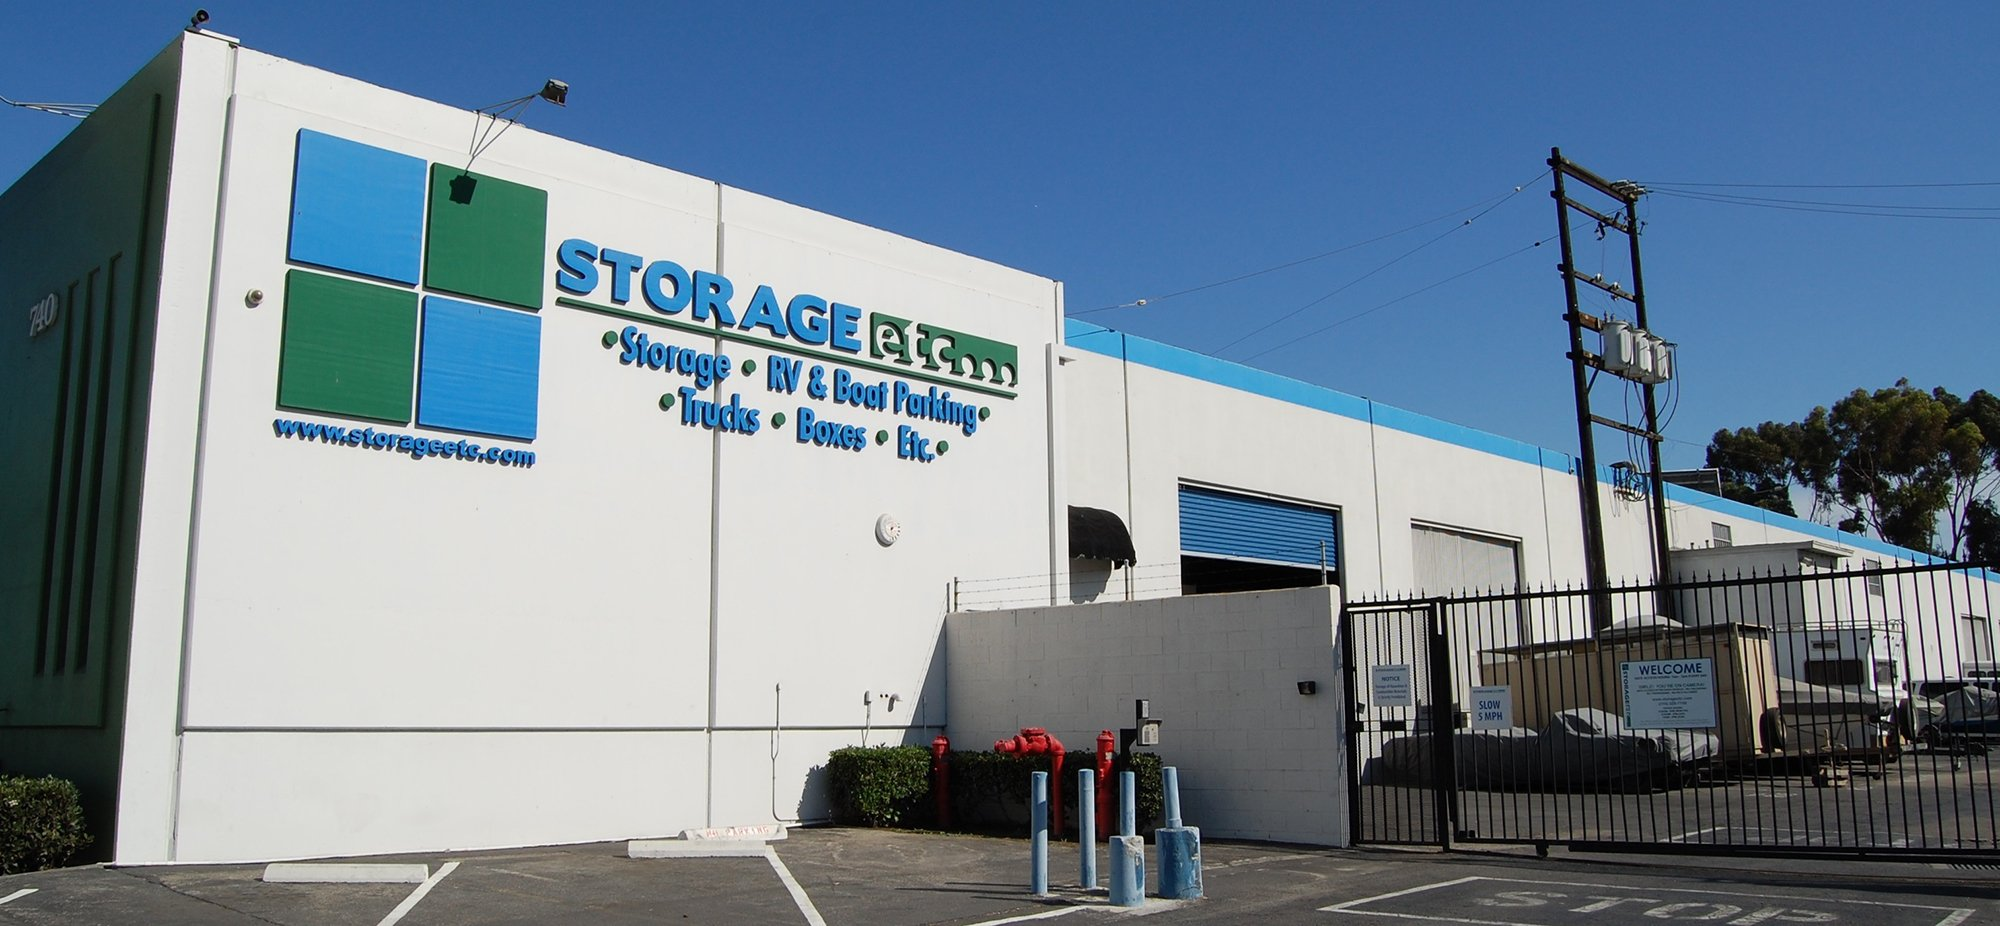 Self Storage Rental Office at Storage Etc... Gardena